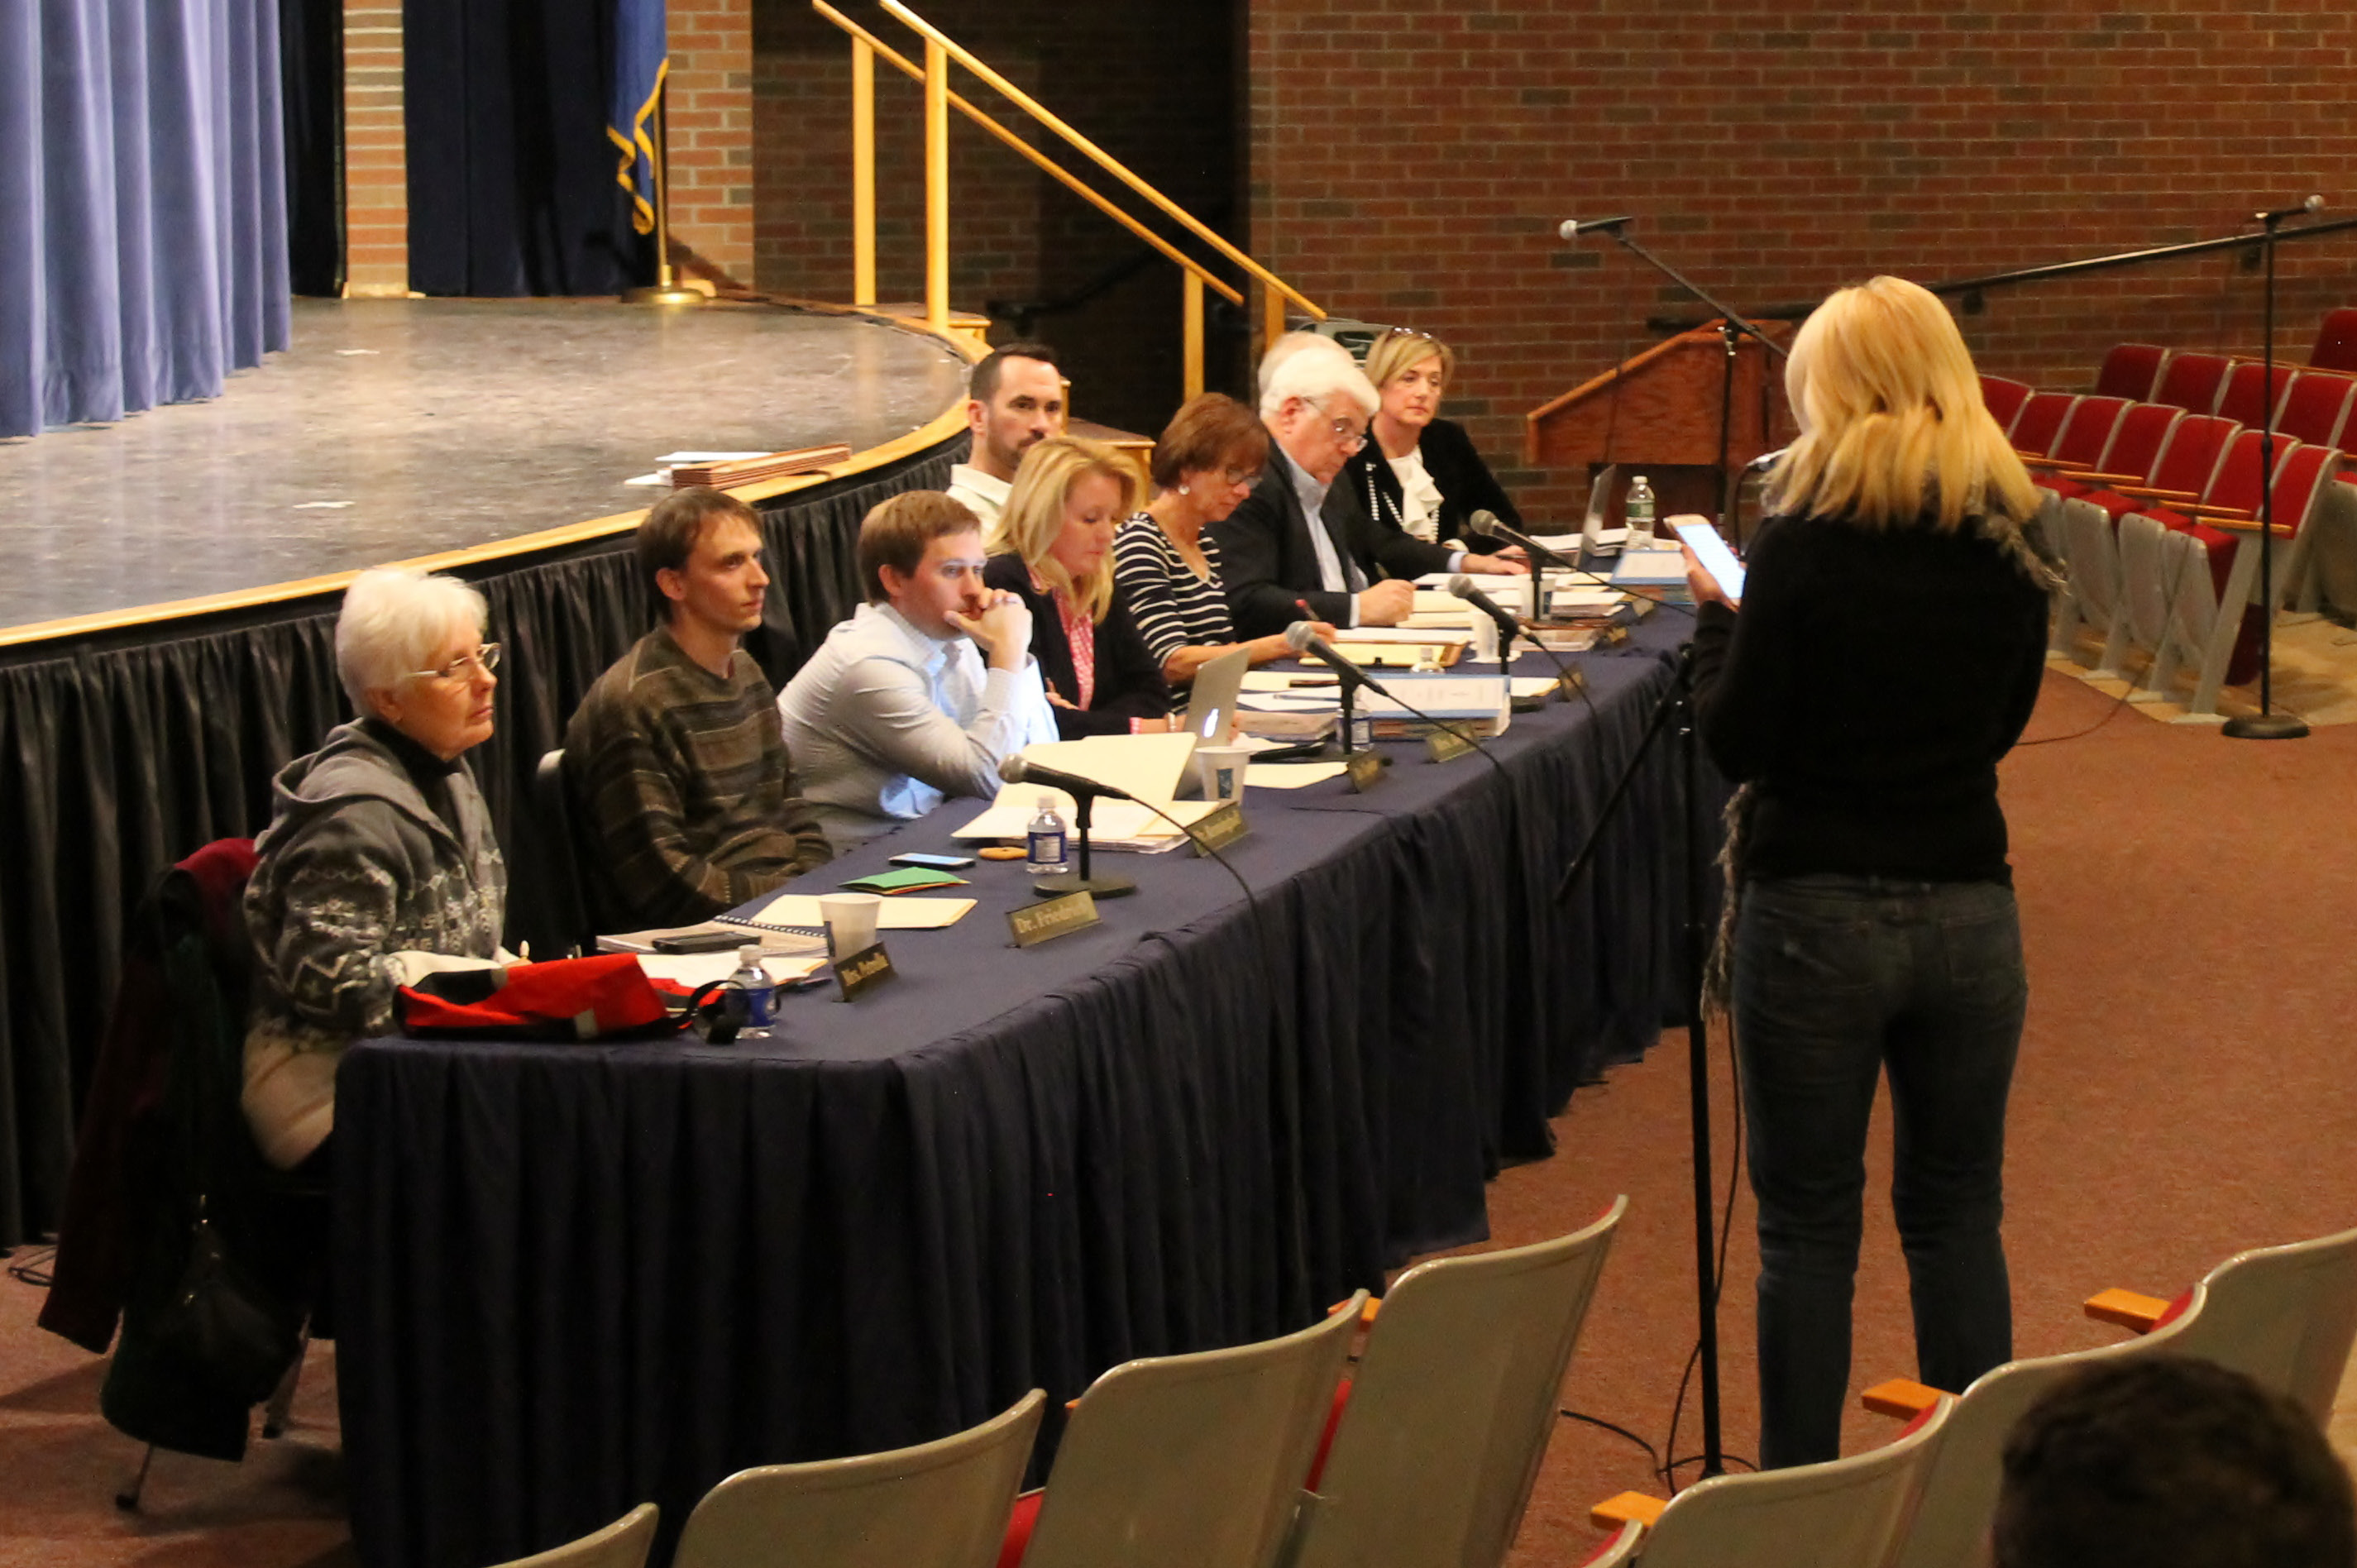 The Board of Education has been discussing topics related to the proposed 2016-2017 District 13 budget, but has yet to take action on the proposals.| Mark Dionne, Town Times